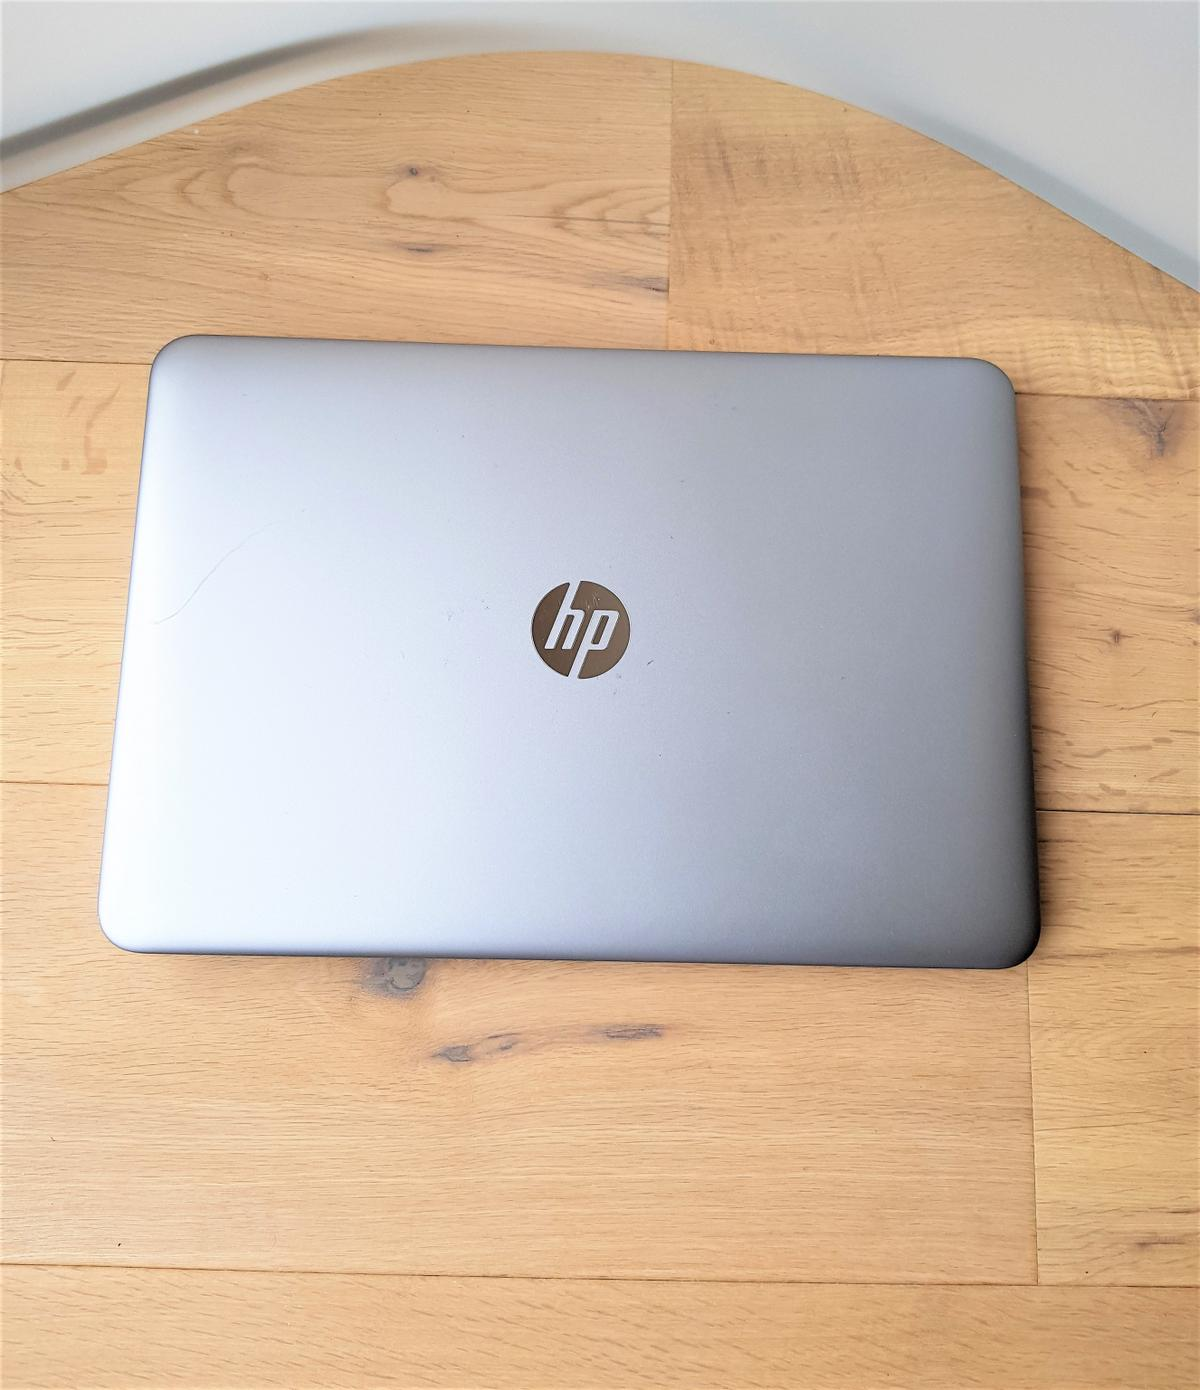 HP ProBook 450 G4 i5 7th Gen Business Laptop in SW15